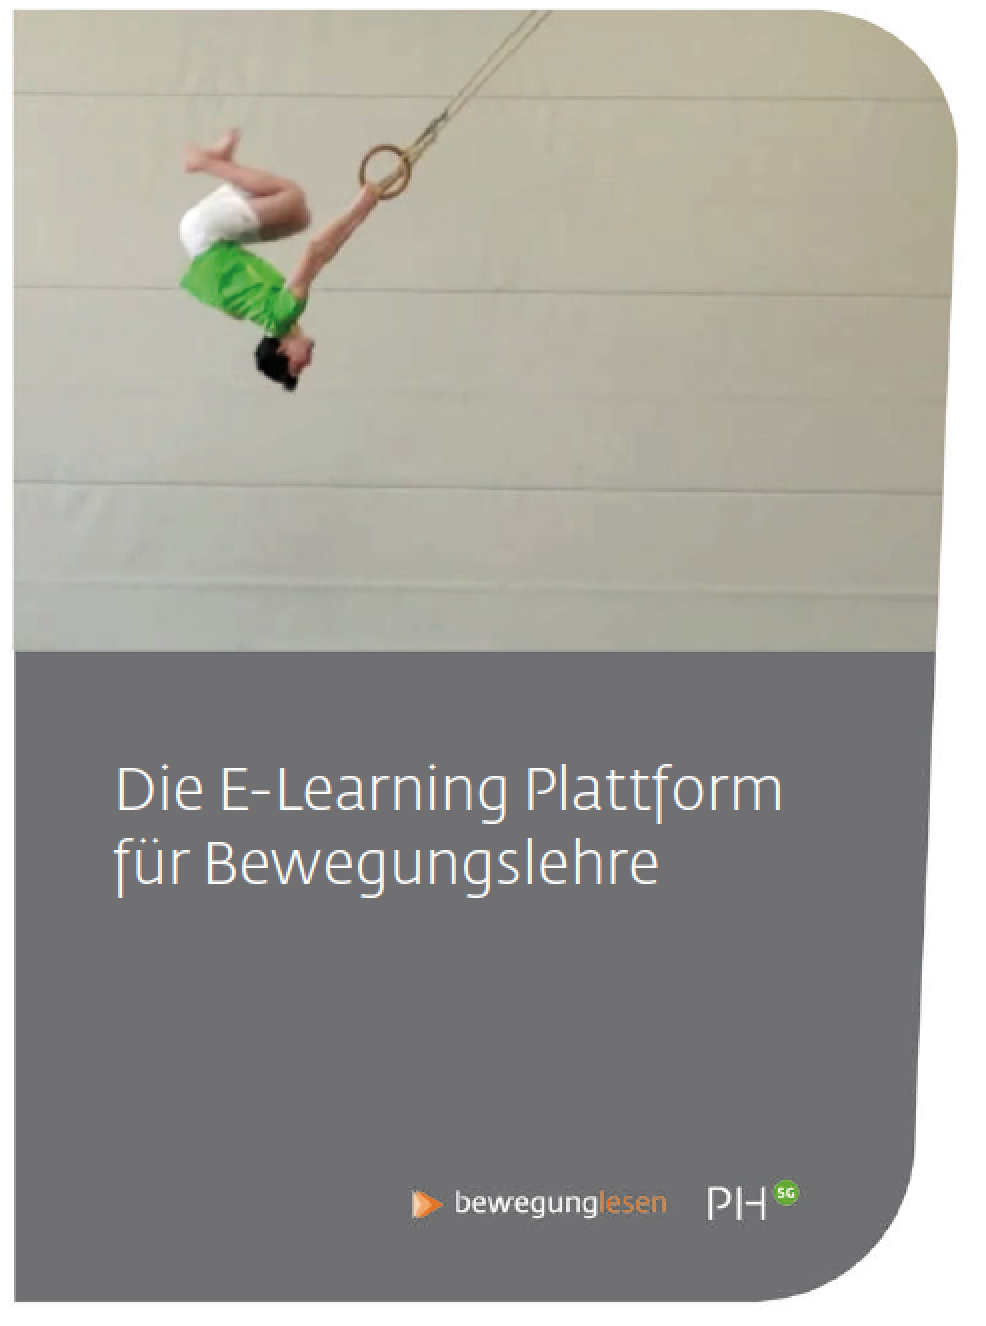 Preview image for LOM object E-Learning Plattform für Bewegungslehre